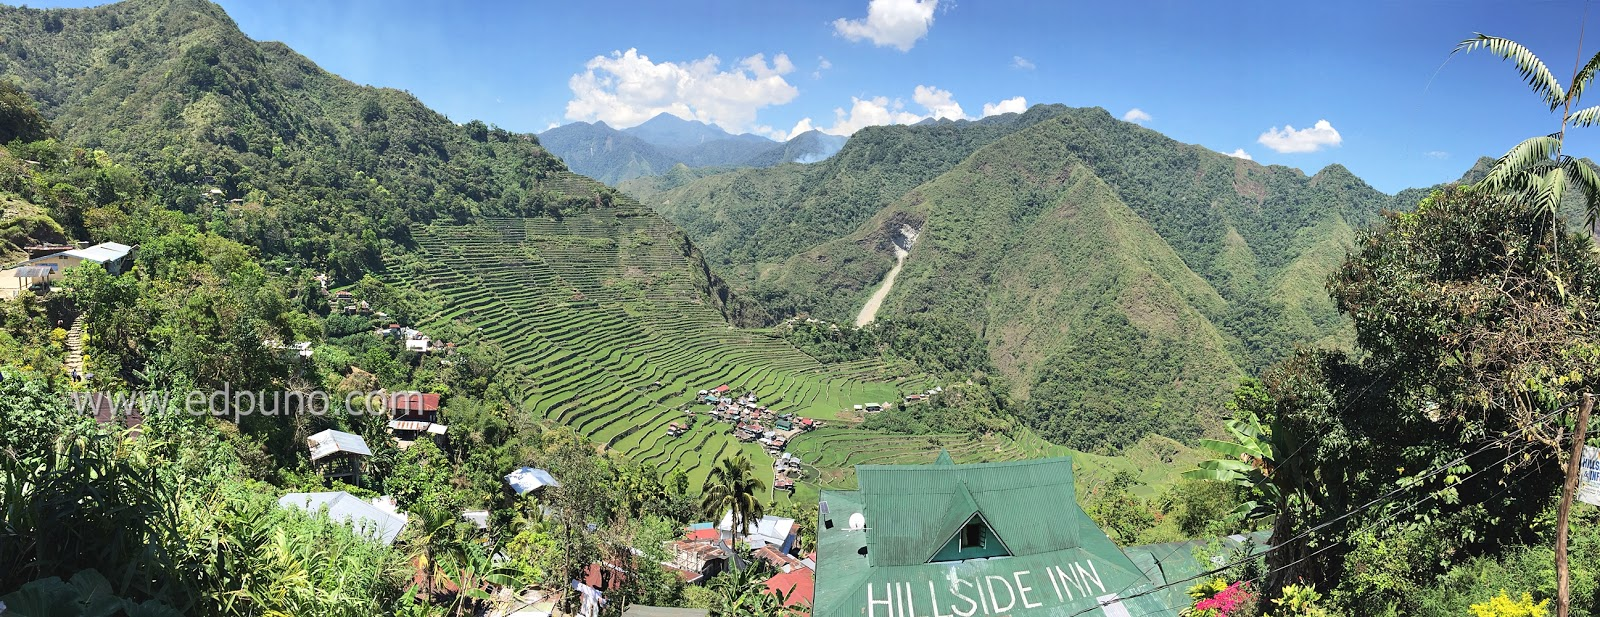 How To Get To Banaue Rice Terraces From Manila One Armed